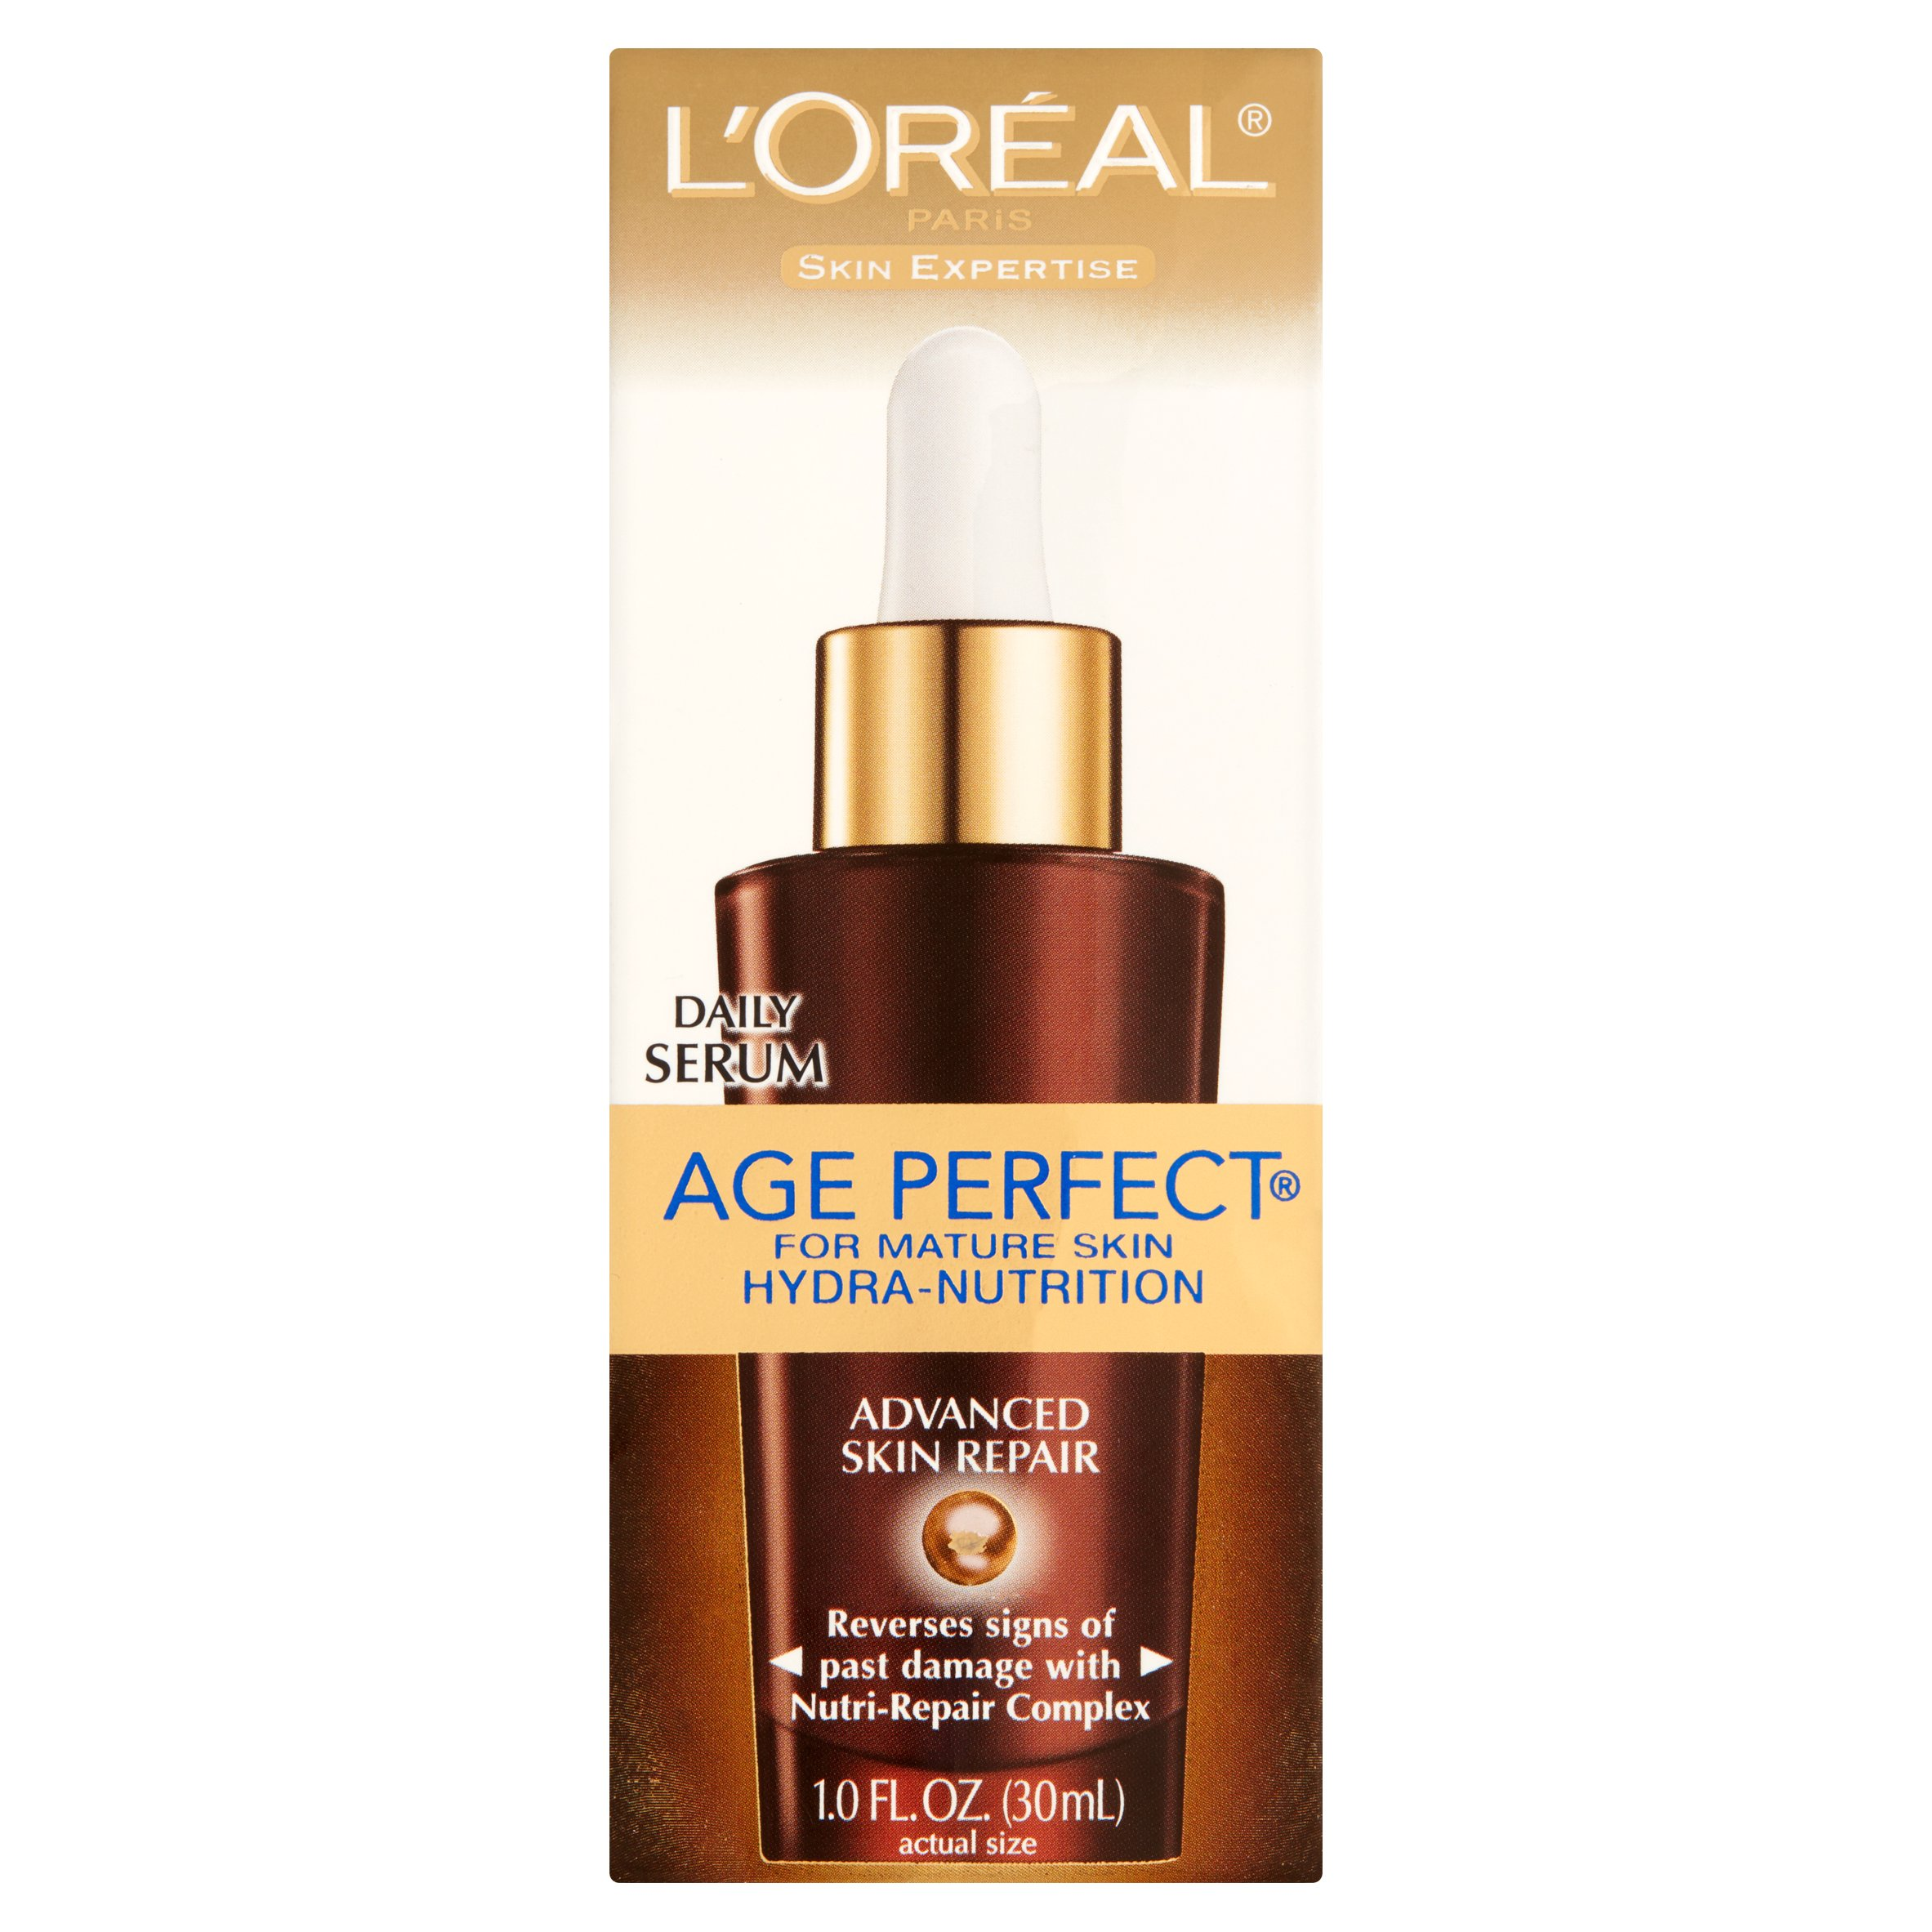 LOreal Skin Expertise Age Perfect Hydra-Nutrition Advanced Skin Repair Serum 1 oz (Pack of 4) (6 Pack) MEDIHEAL Teatree Care Solution Essential Mask